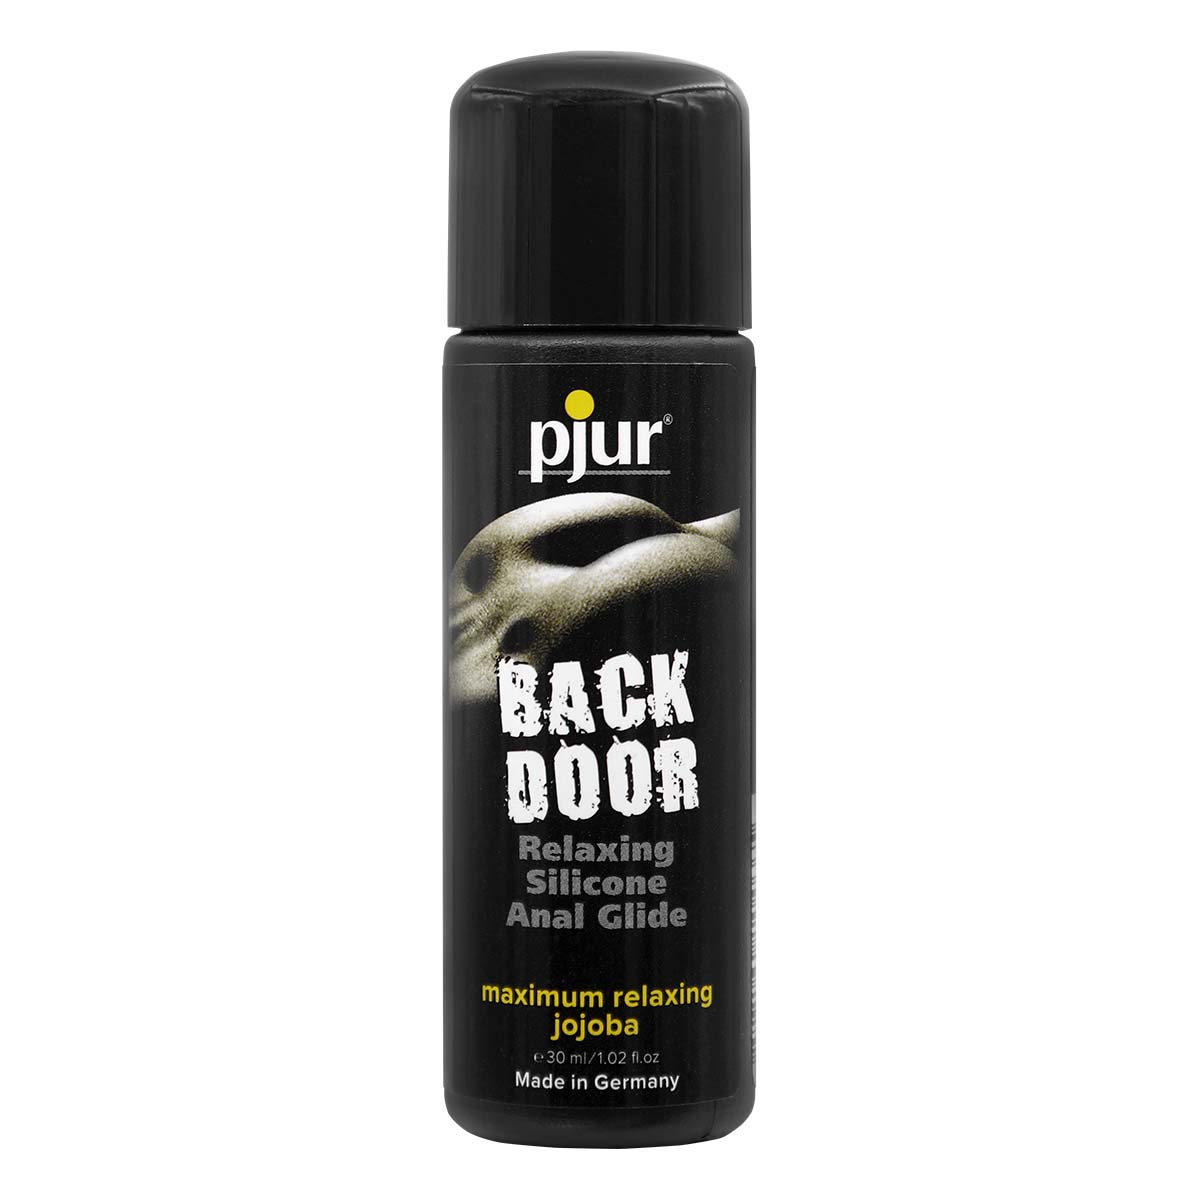 pjur BACK DOOR RELAXING Silicone Anal Glide 30ml Silicone-based Lubricant